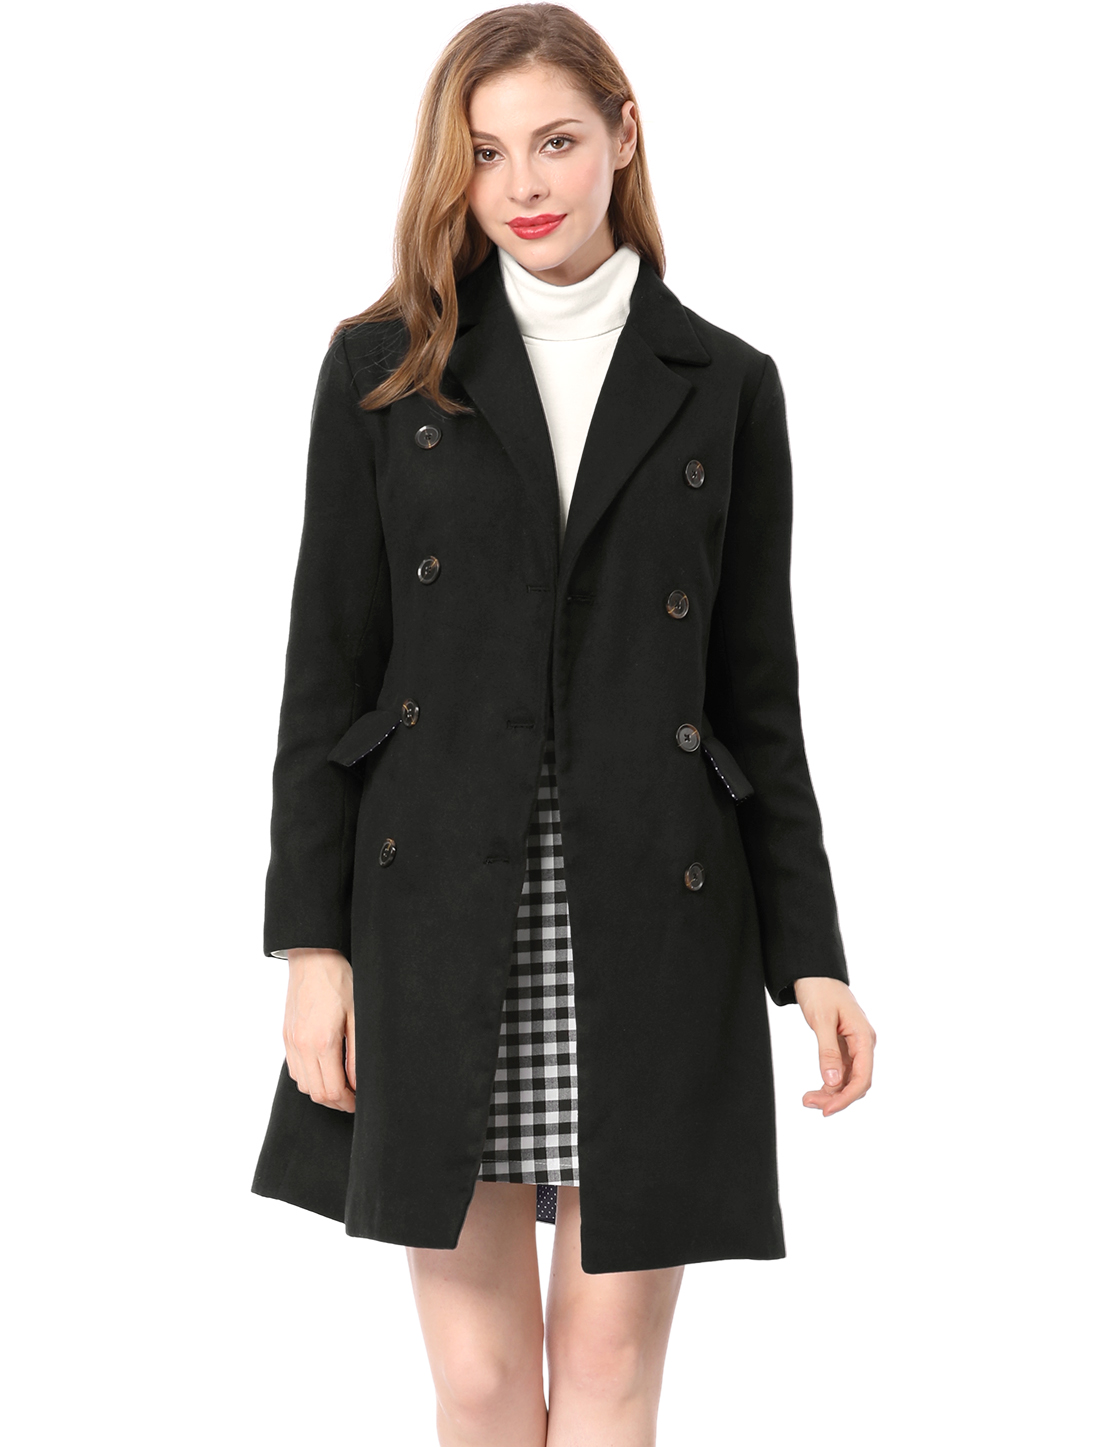 Women Notched Lapel Double Breasted Trench Coat Black L (US 14)